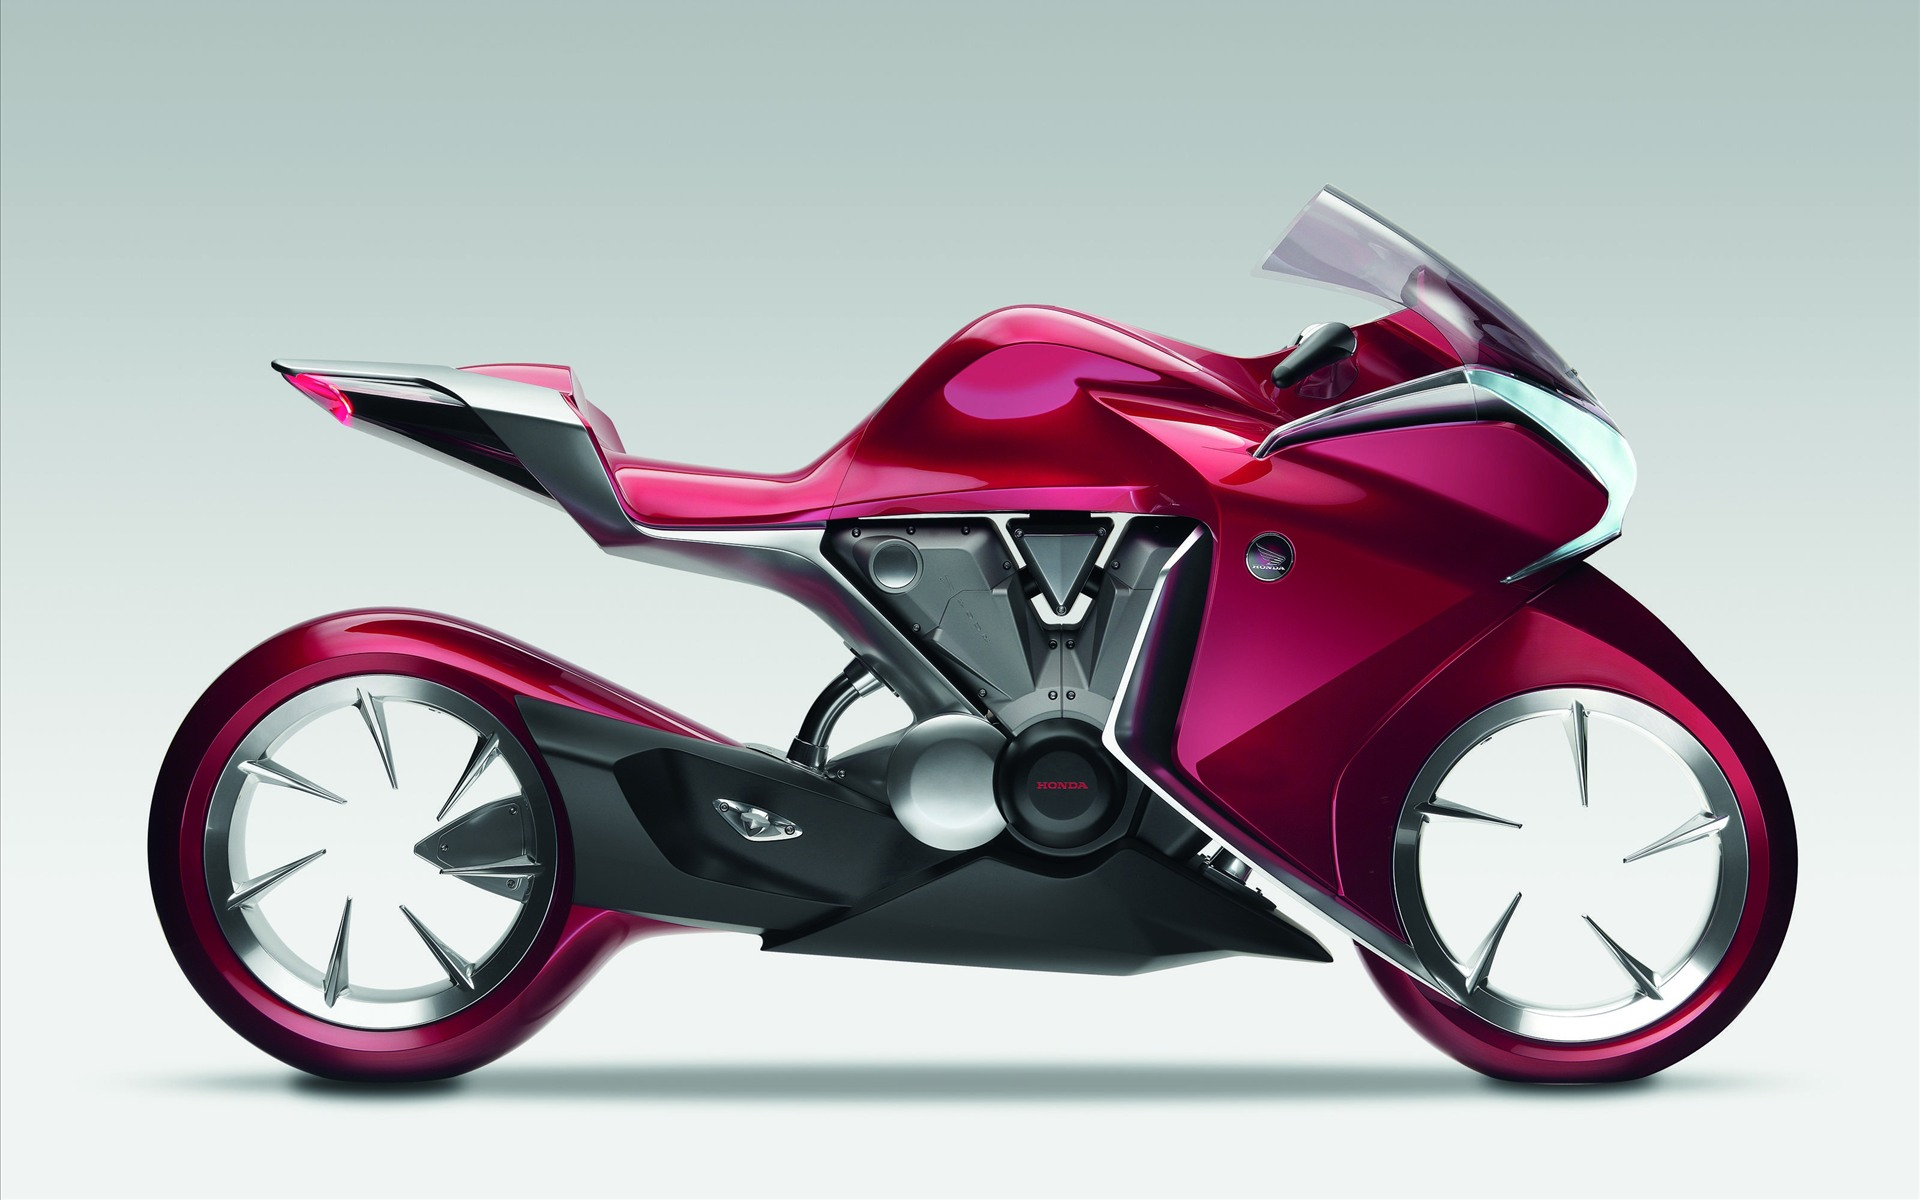 Honda Concept Bike Wallpapers HD Wallpapers 1920x1200